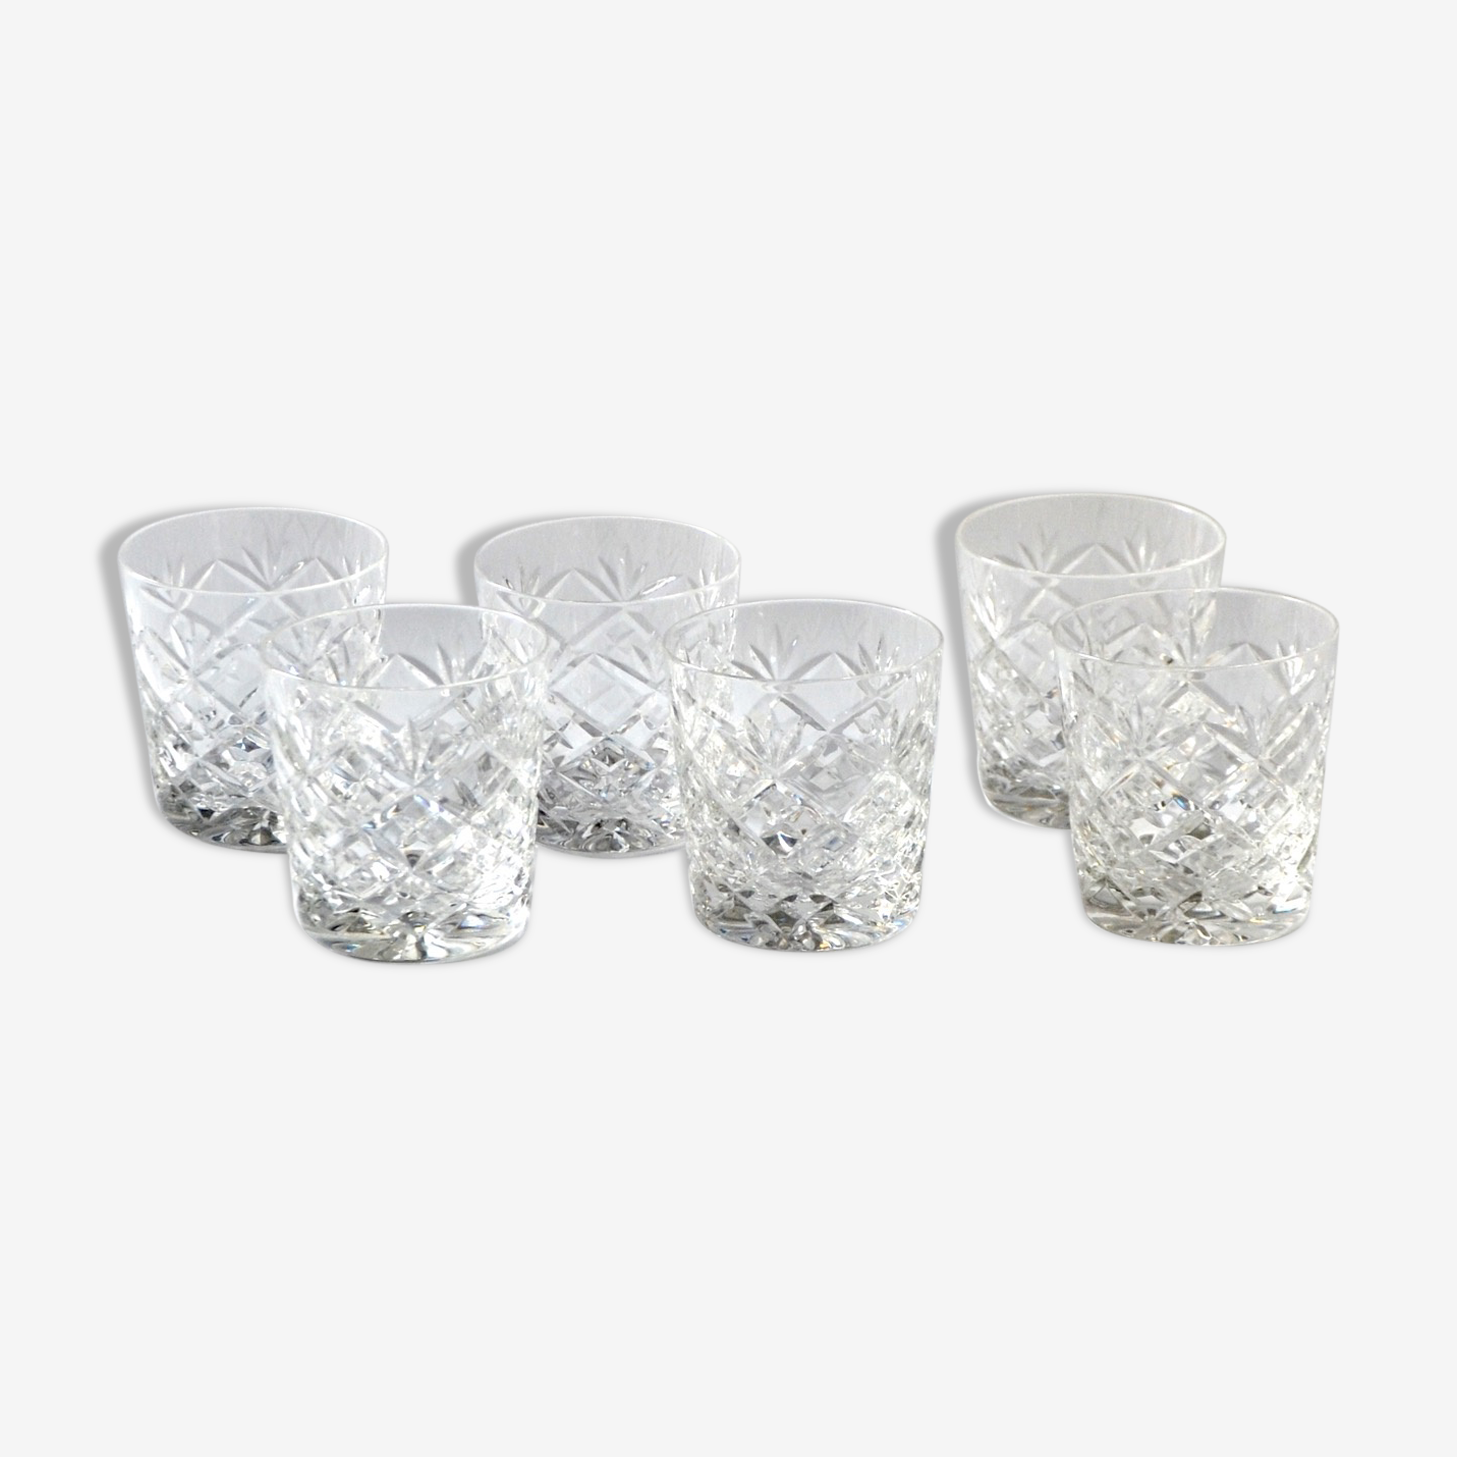 6 cut Crystal whisky glasses